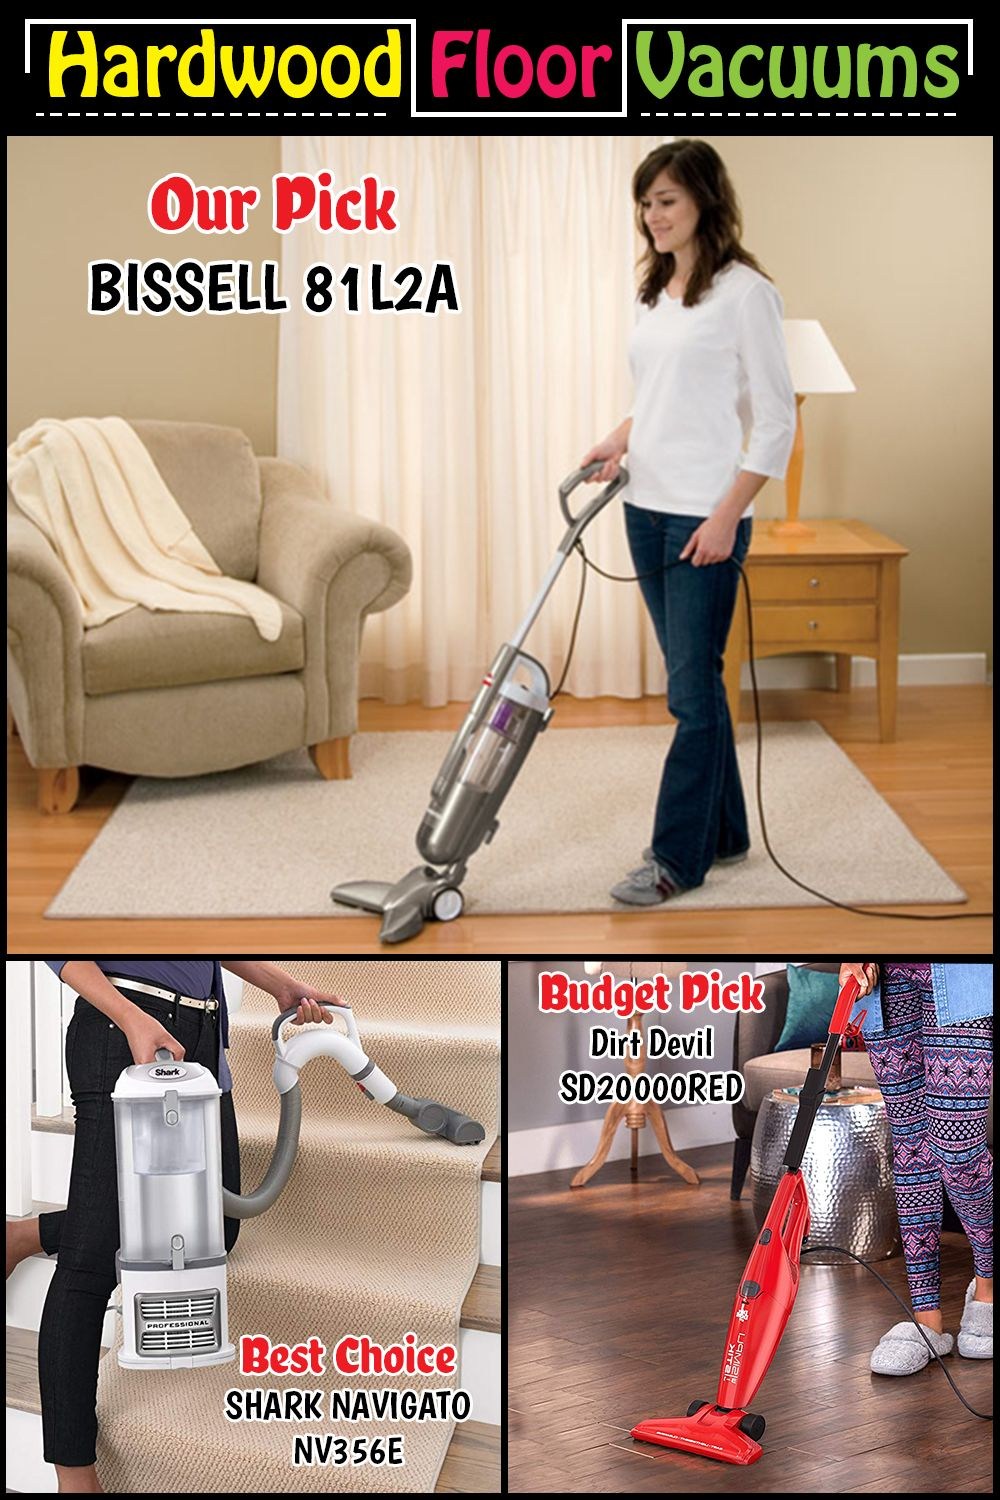 Are You Looking For A Hardwood Floor Vacuum Cleaner After Last Night S Get Together Here We With The Best Vacuums Floors